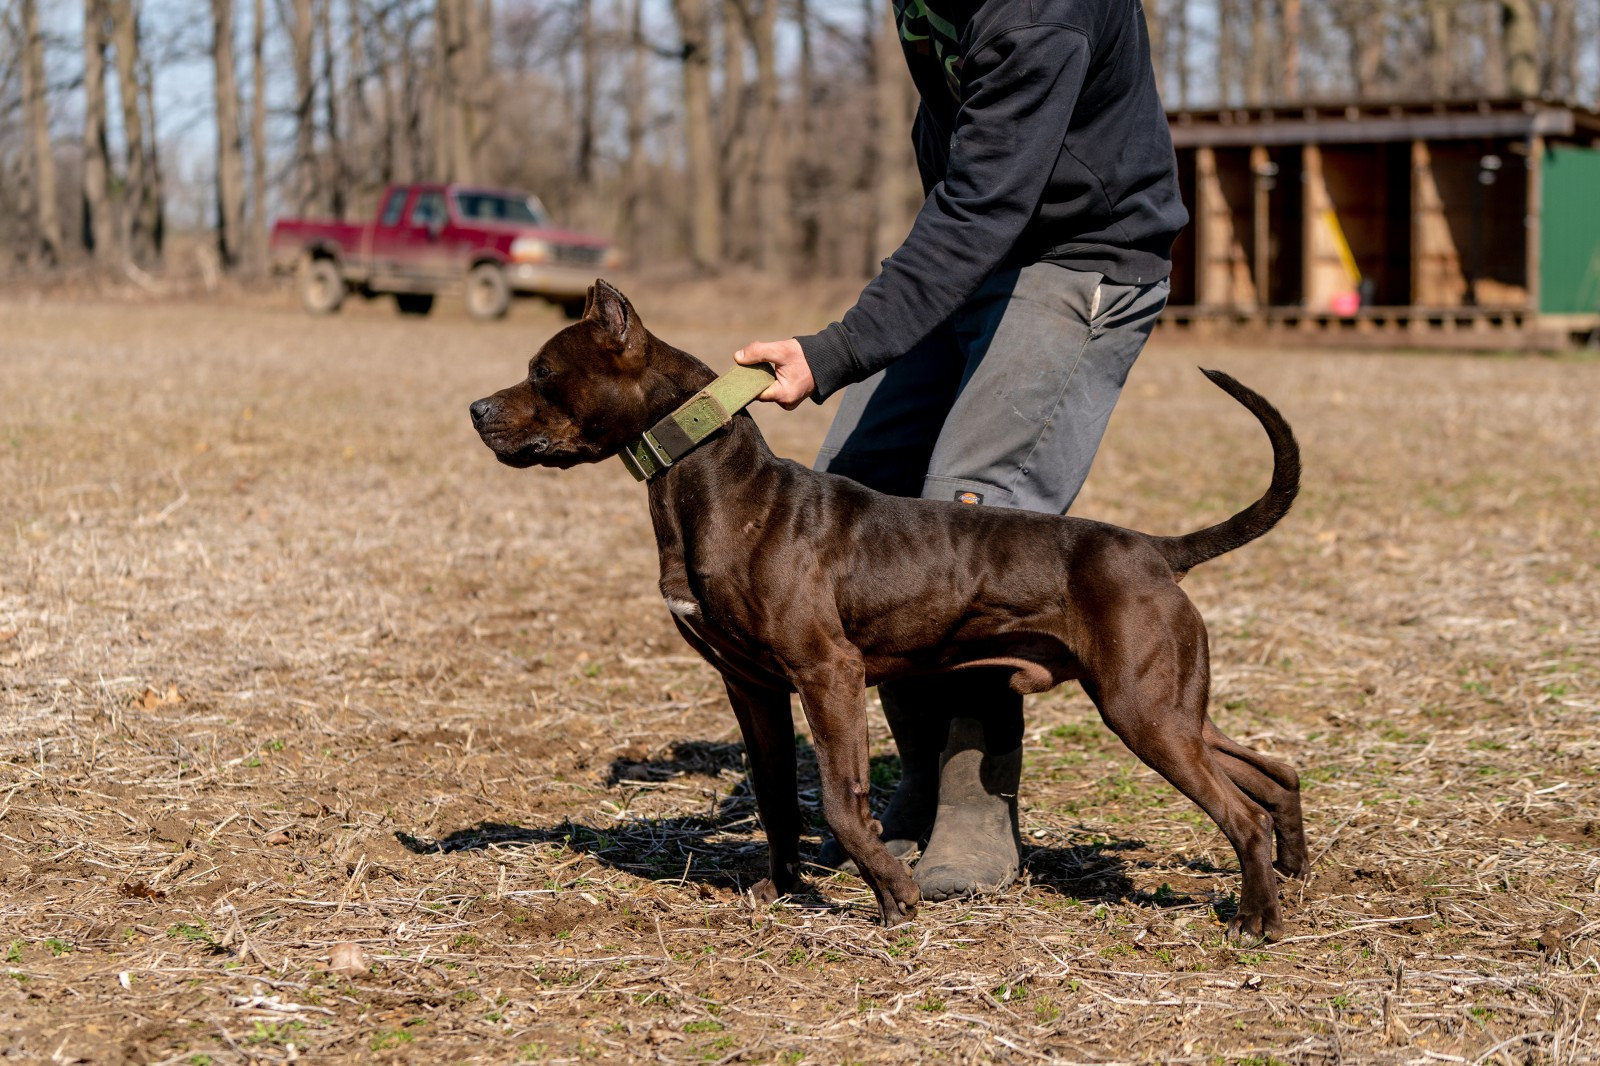 Hitman, a black XL pitbull from Unleashed kennelz lunges, ripped muscles flexed, in a side profile shot with his owner holding him by the green collar.